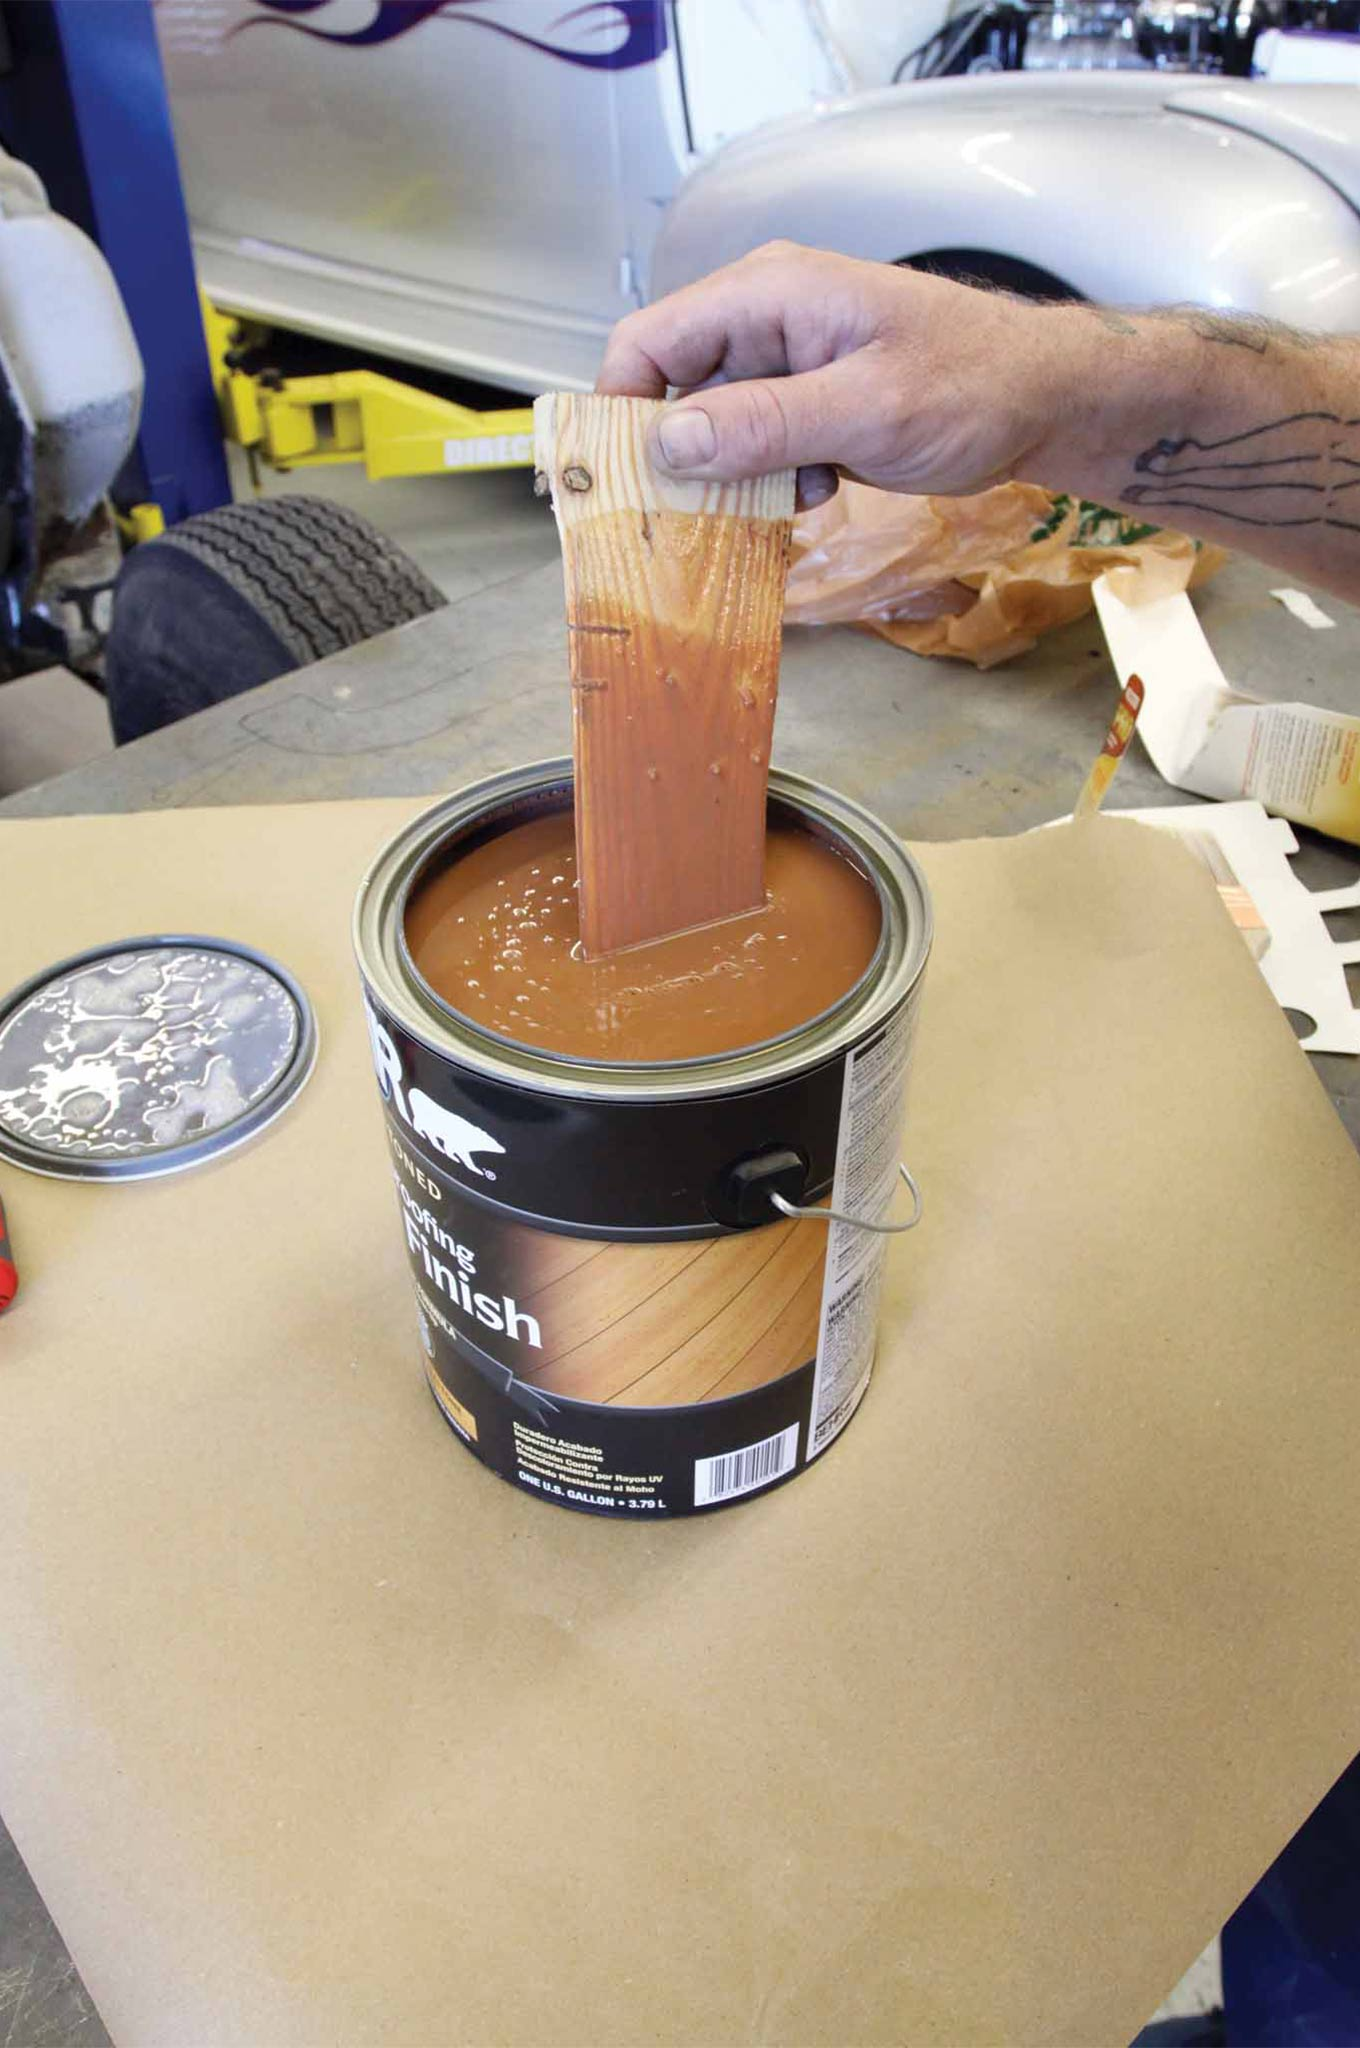 Pick out a wood stain with a hue that complements the color of your truck. We used a one-step weatherproofing stain intended for outdoor patio decks. For a deep glossy finish look to a high-gloss marine varnish.